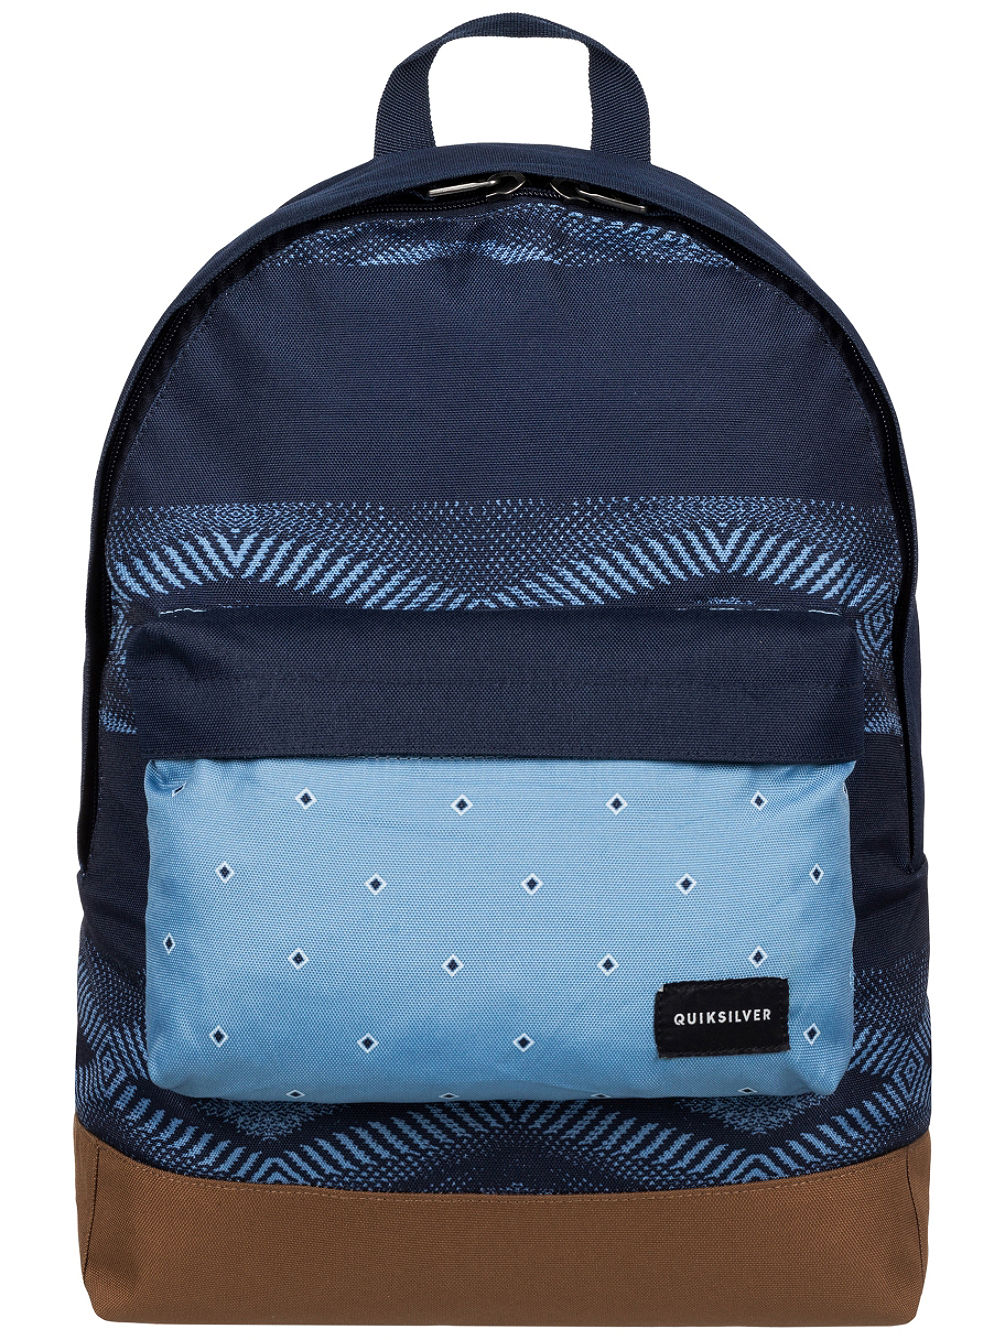 quiksilver-everyday-poster-backpack